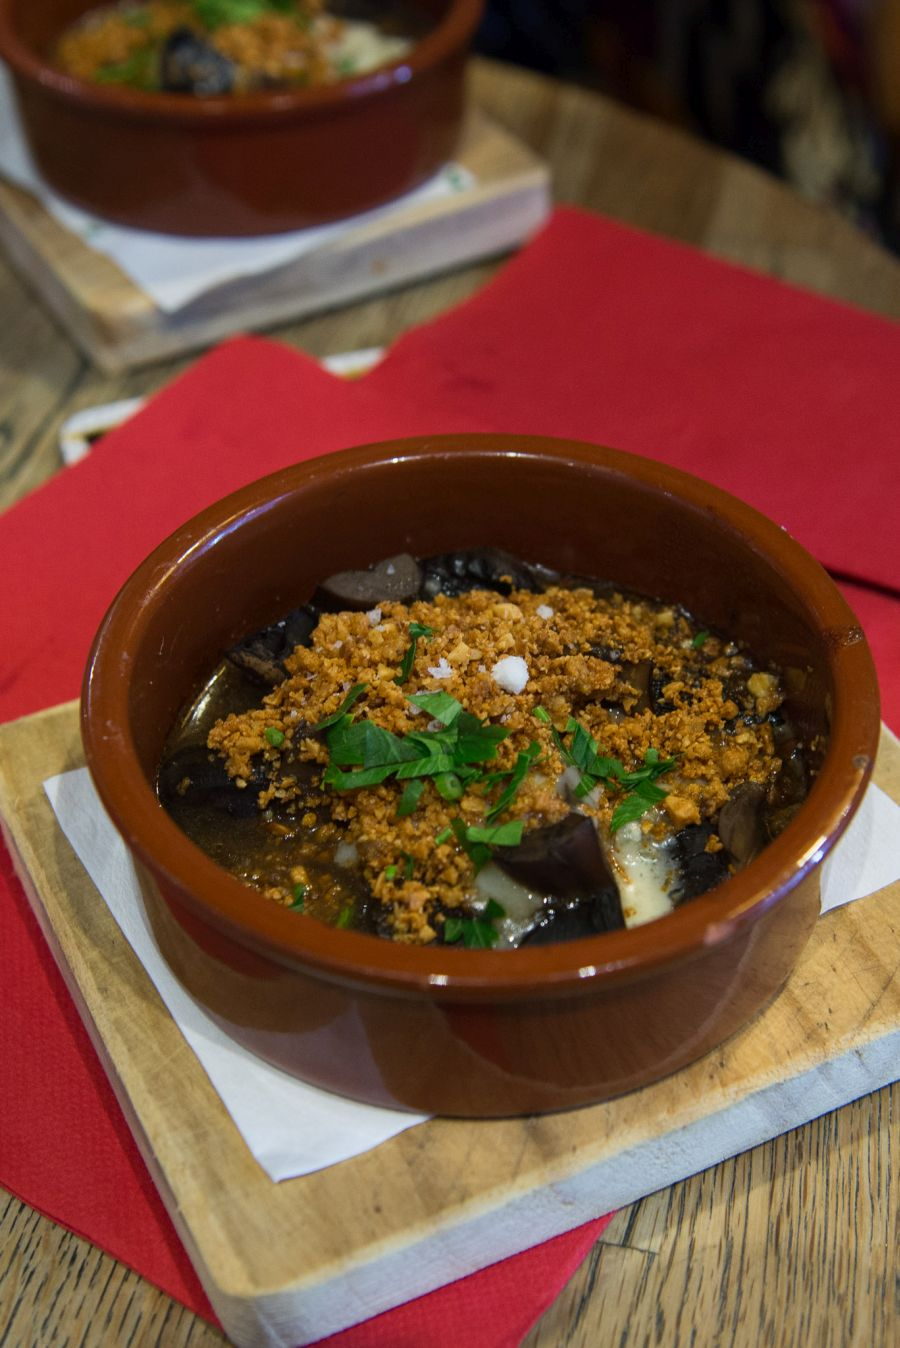 Champinones con queso azul - mushrooms, blue cheese, PX vinegar, almond crumbs (AU$9)